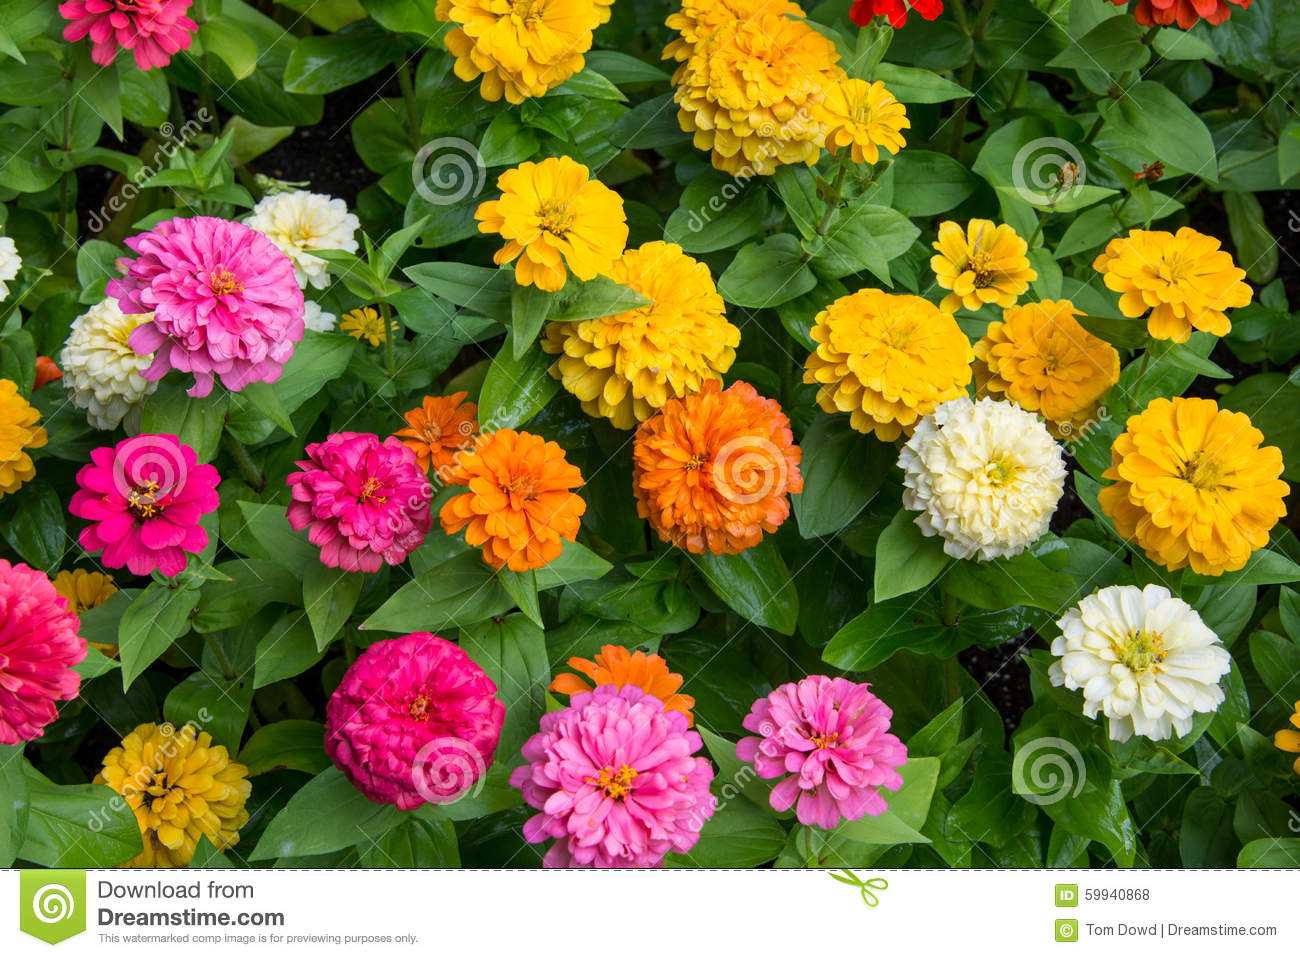 Colorful allium chrysanthemum dahlia stock photo image of blossoms pink orange yellow and white allium chrysanthemum dahlia flowers in bloom mightylinksfo